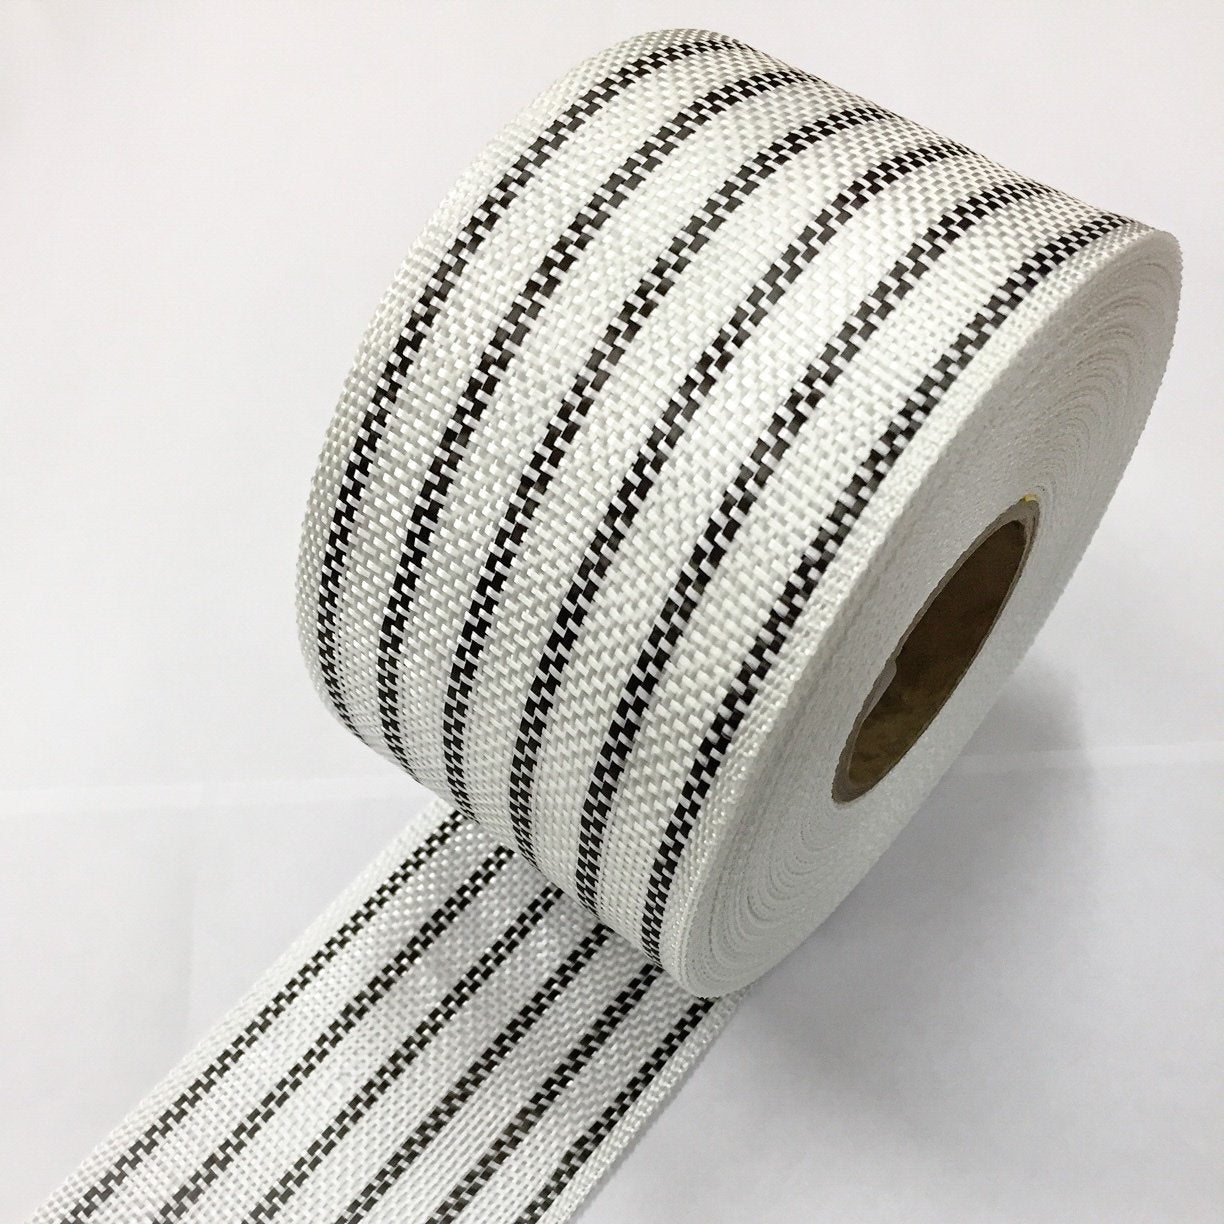 6 Stripe Carbon Rail Tape